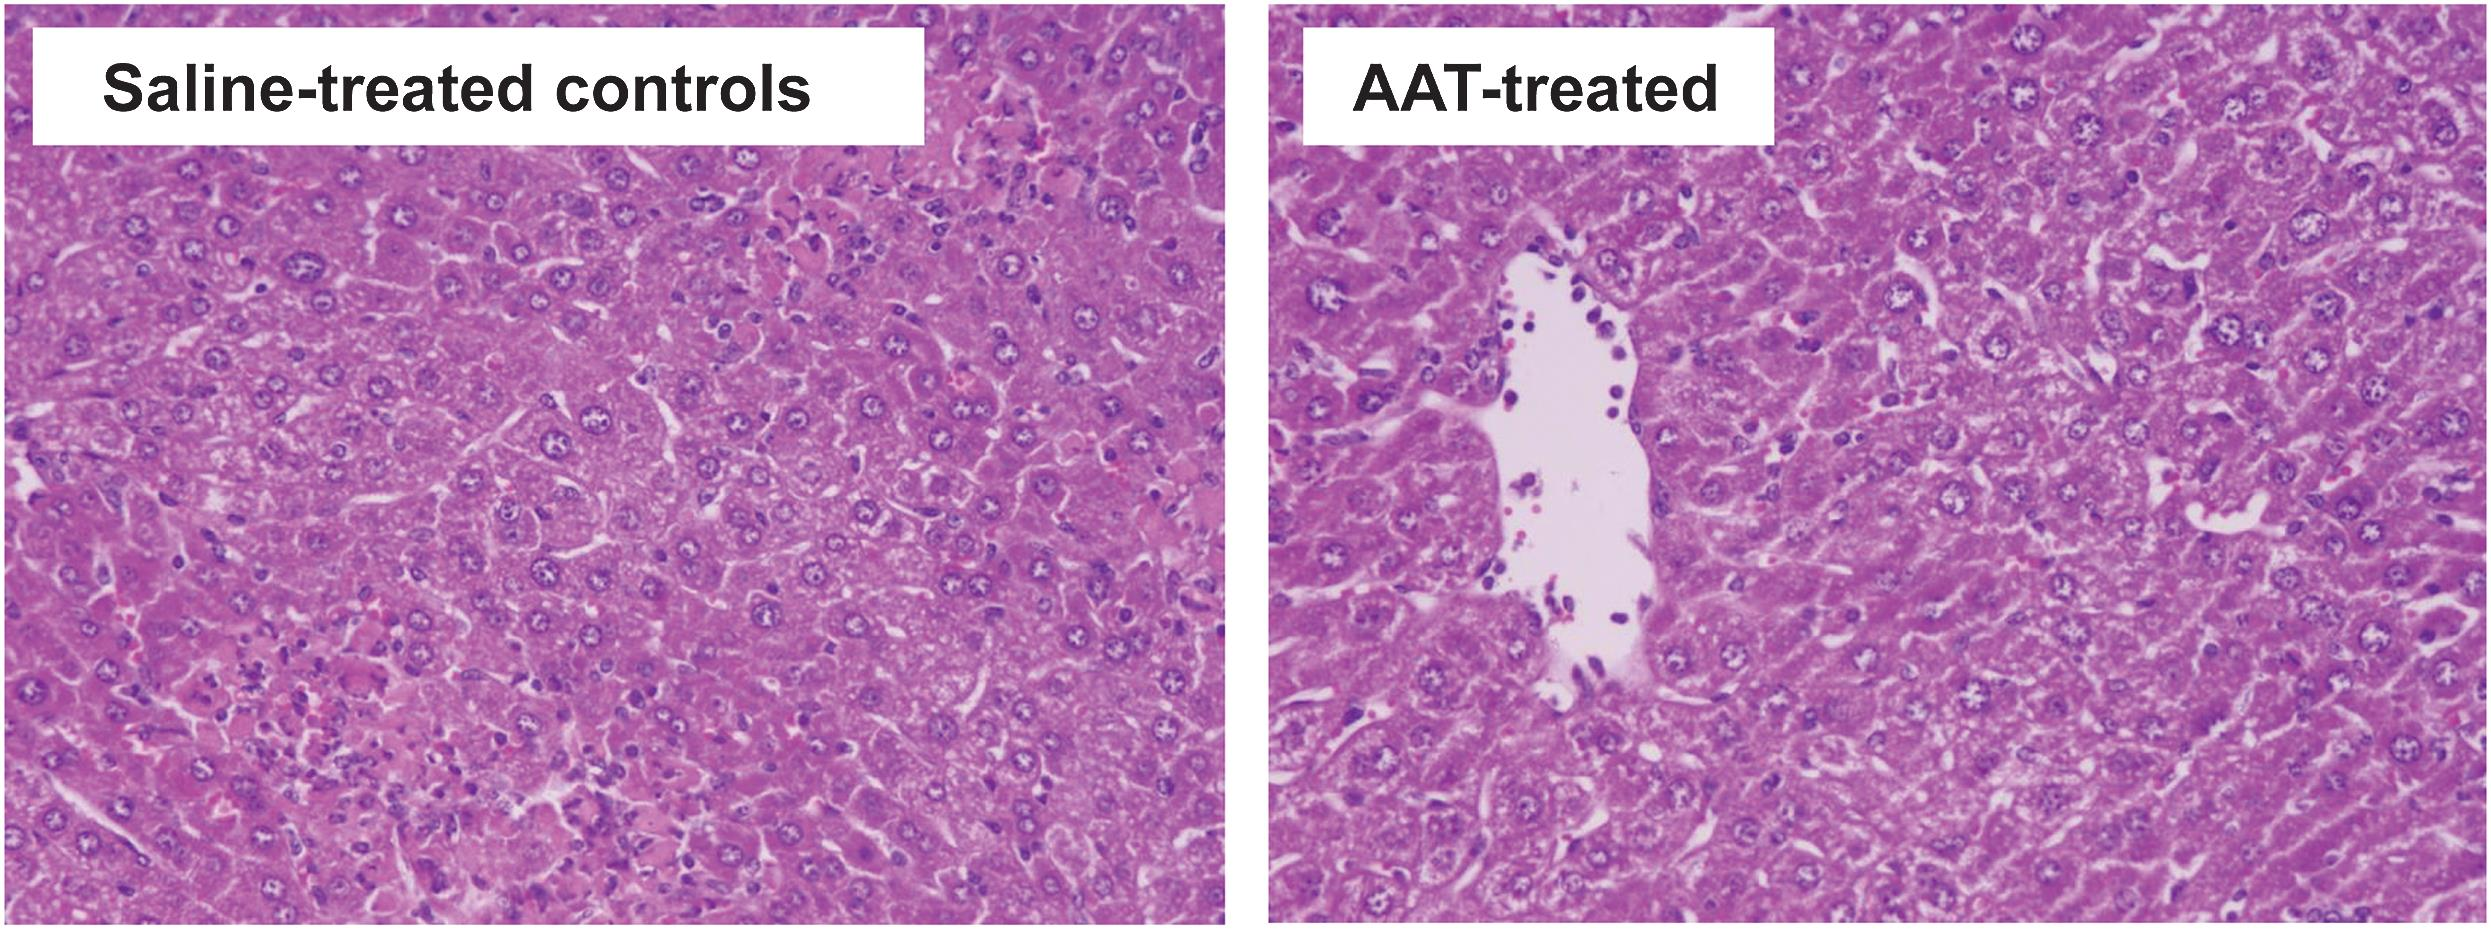 Effect of AAT on histology in the ConA-induced hepatitis model.